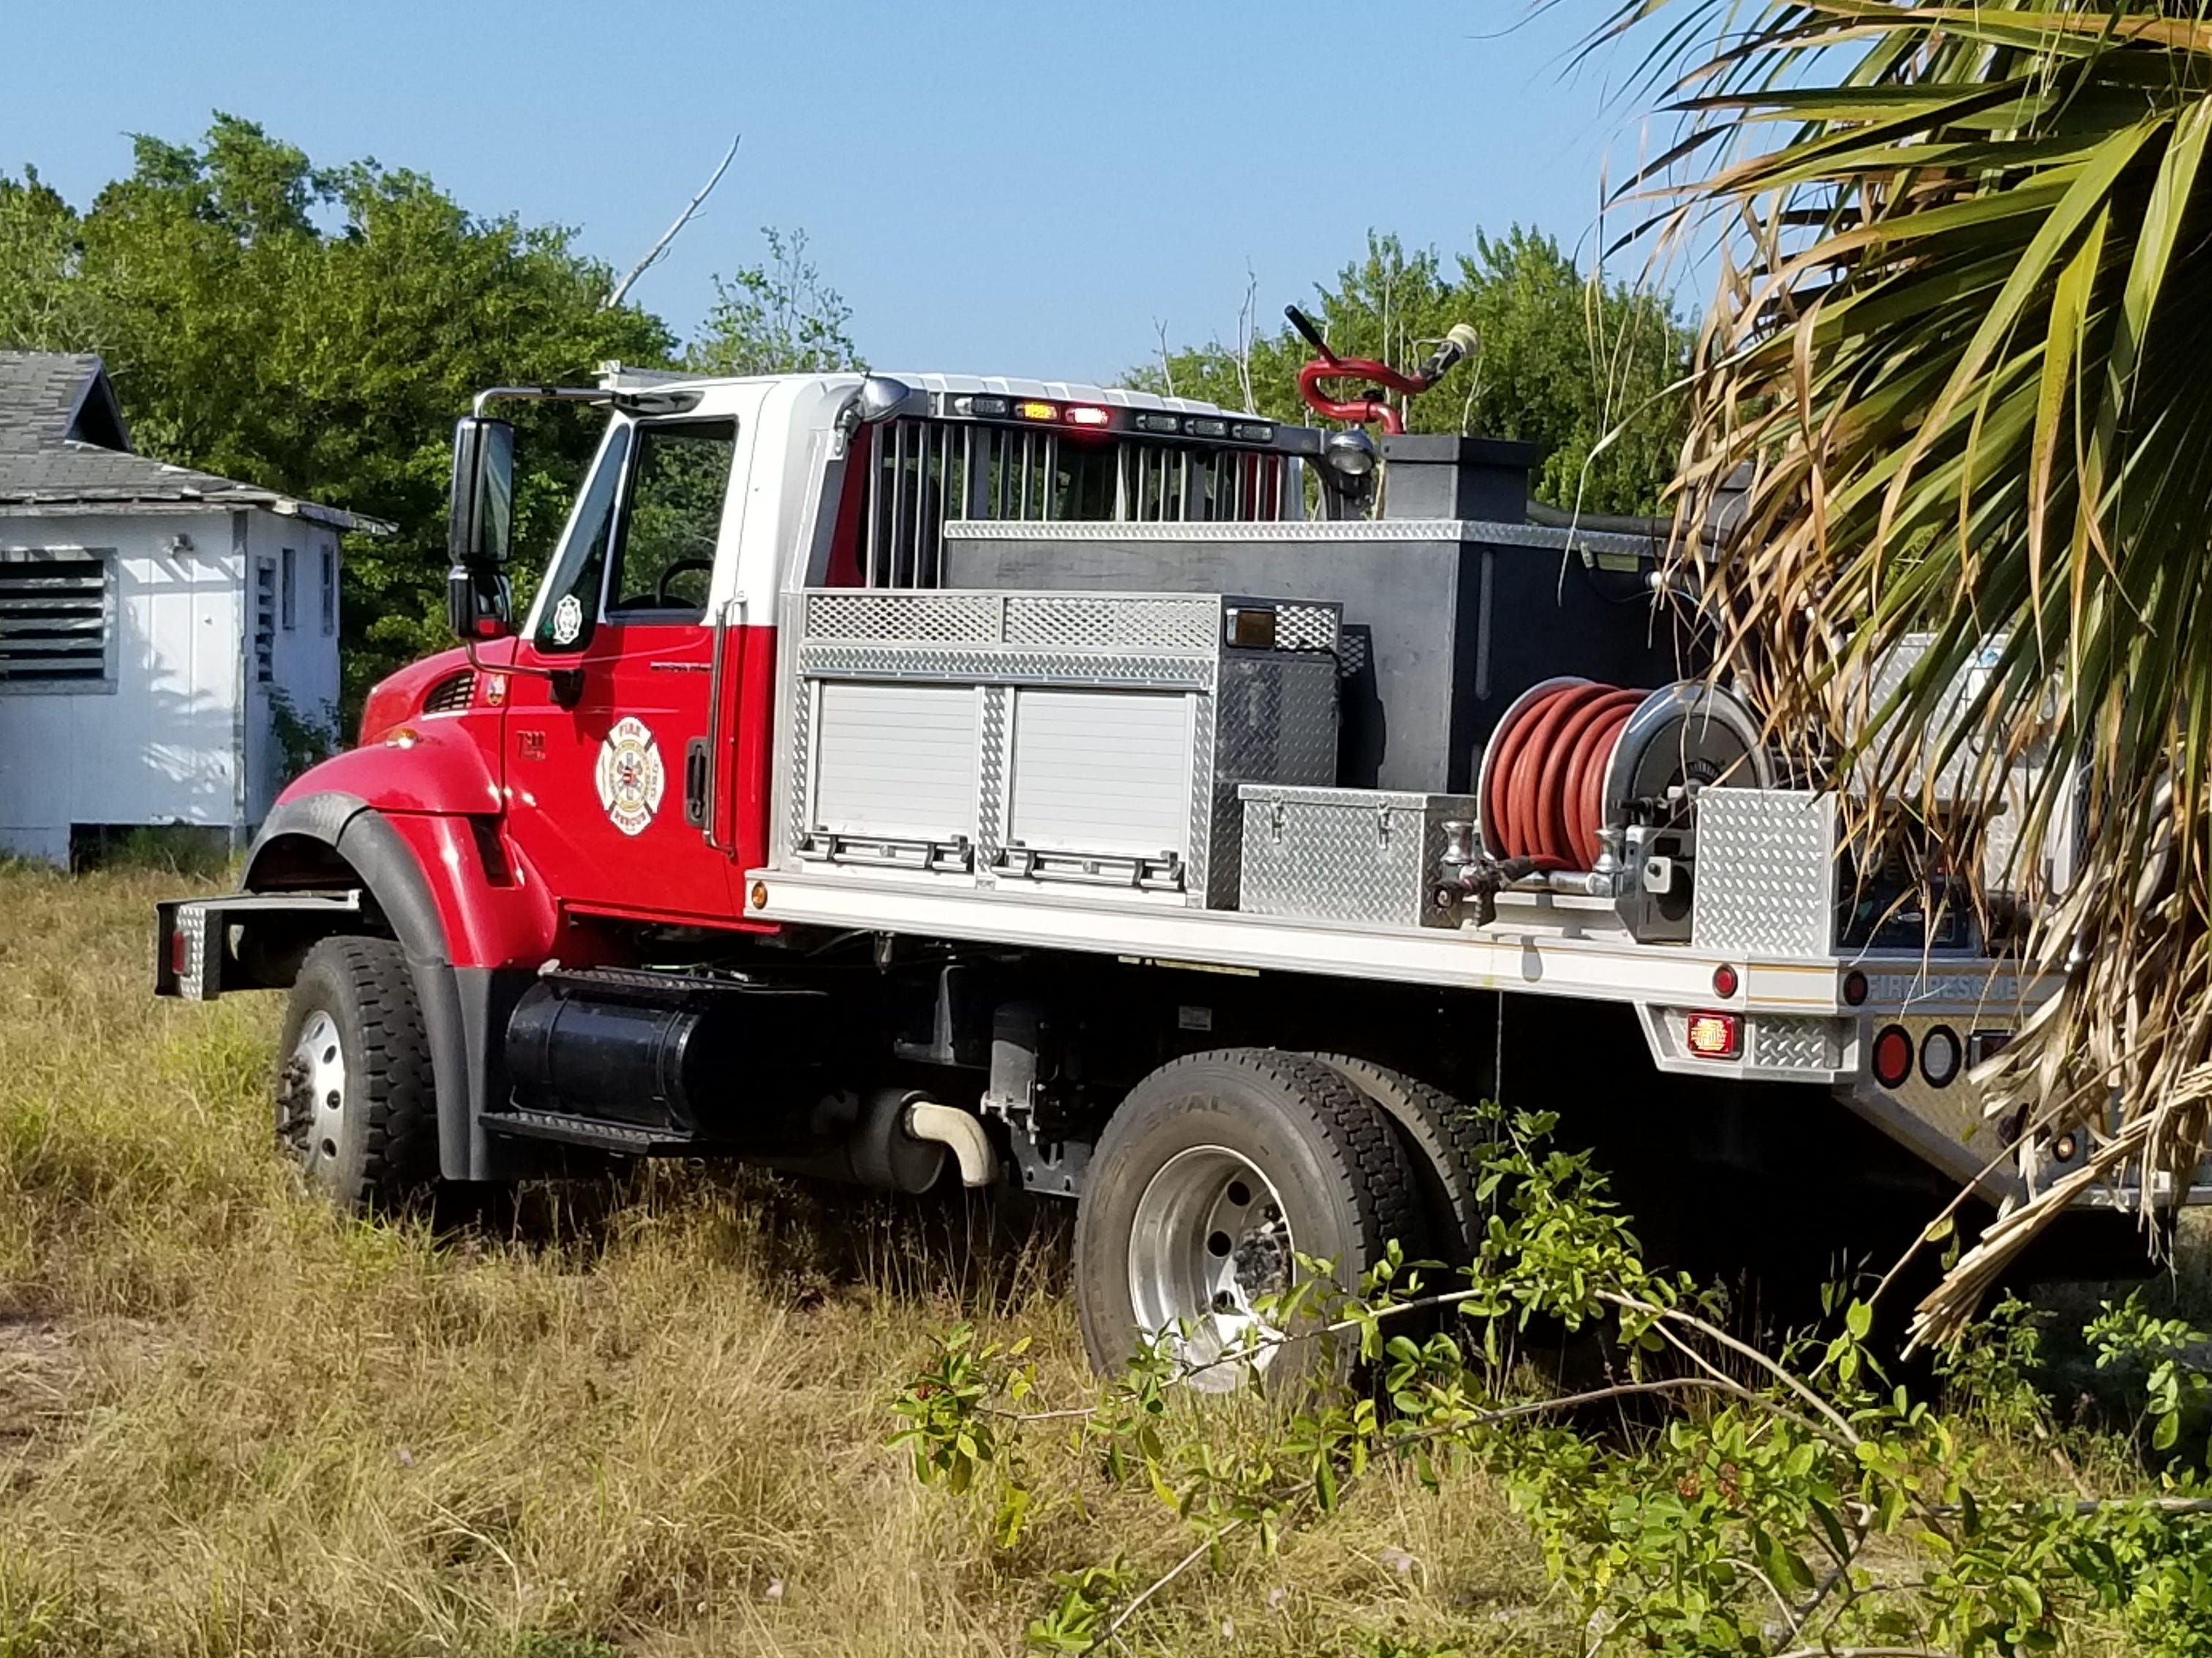 Indian River County Fire Rescue crews responded to a boat that exploded Friday afternoon, March 15, 2019, behind a house on Manly Avenue in Sebastian.